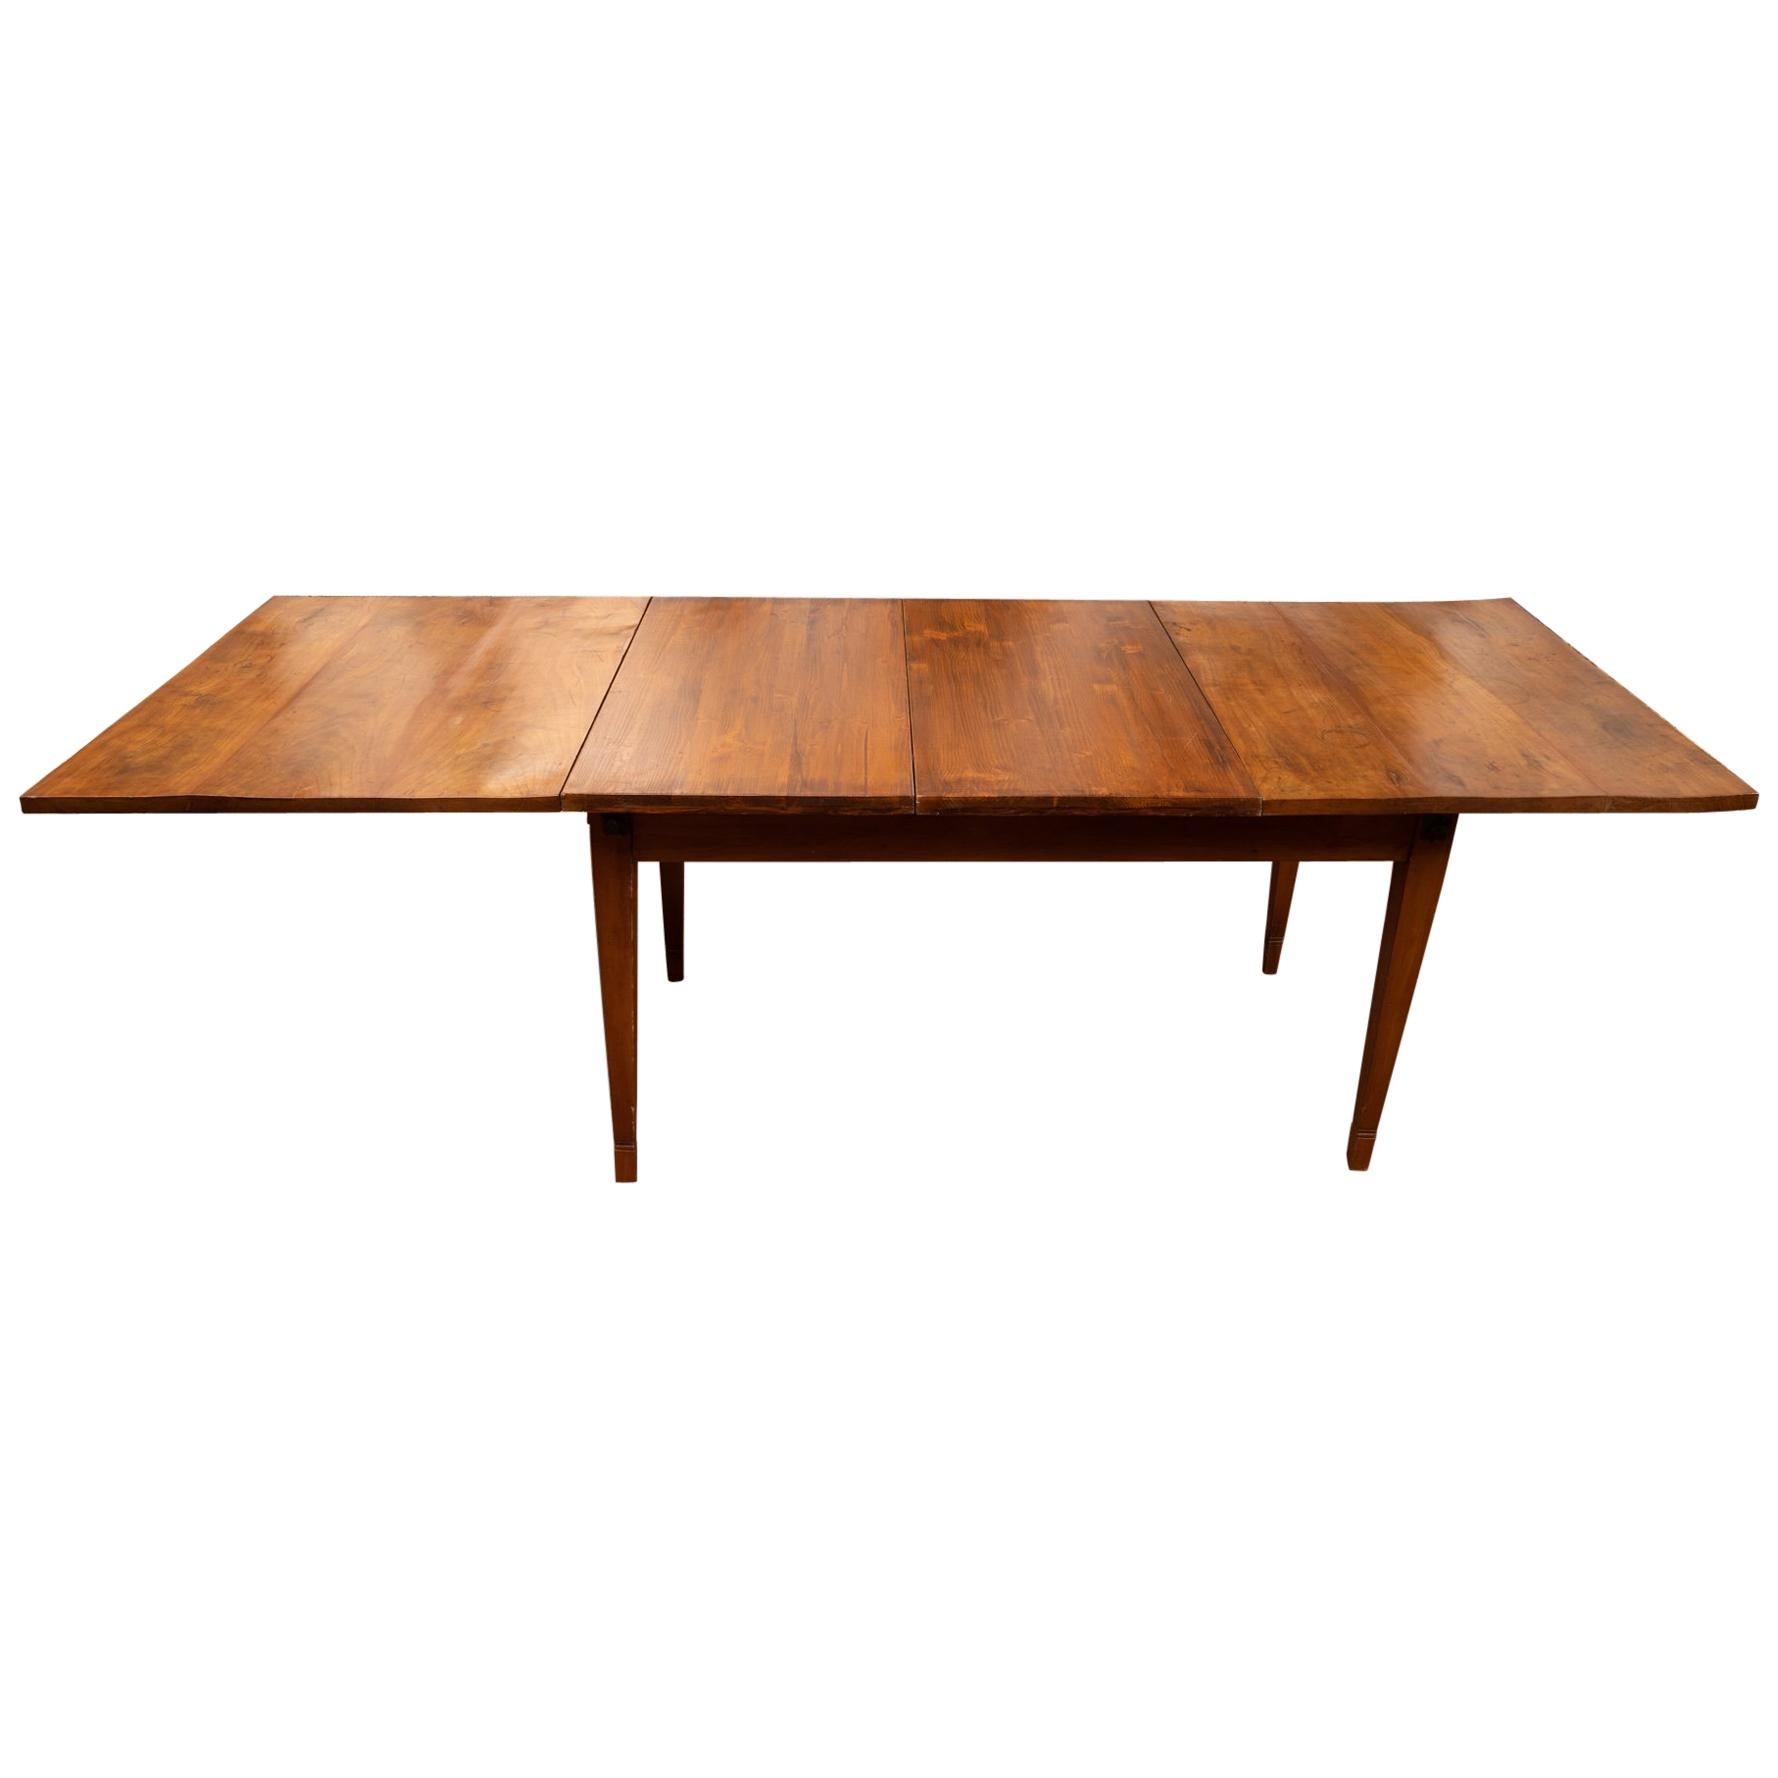 Early 19th Century Walnut Directoire Dining Table